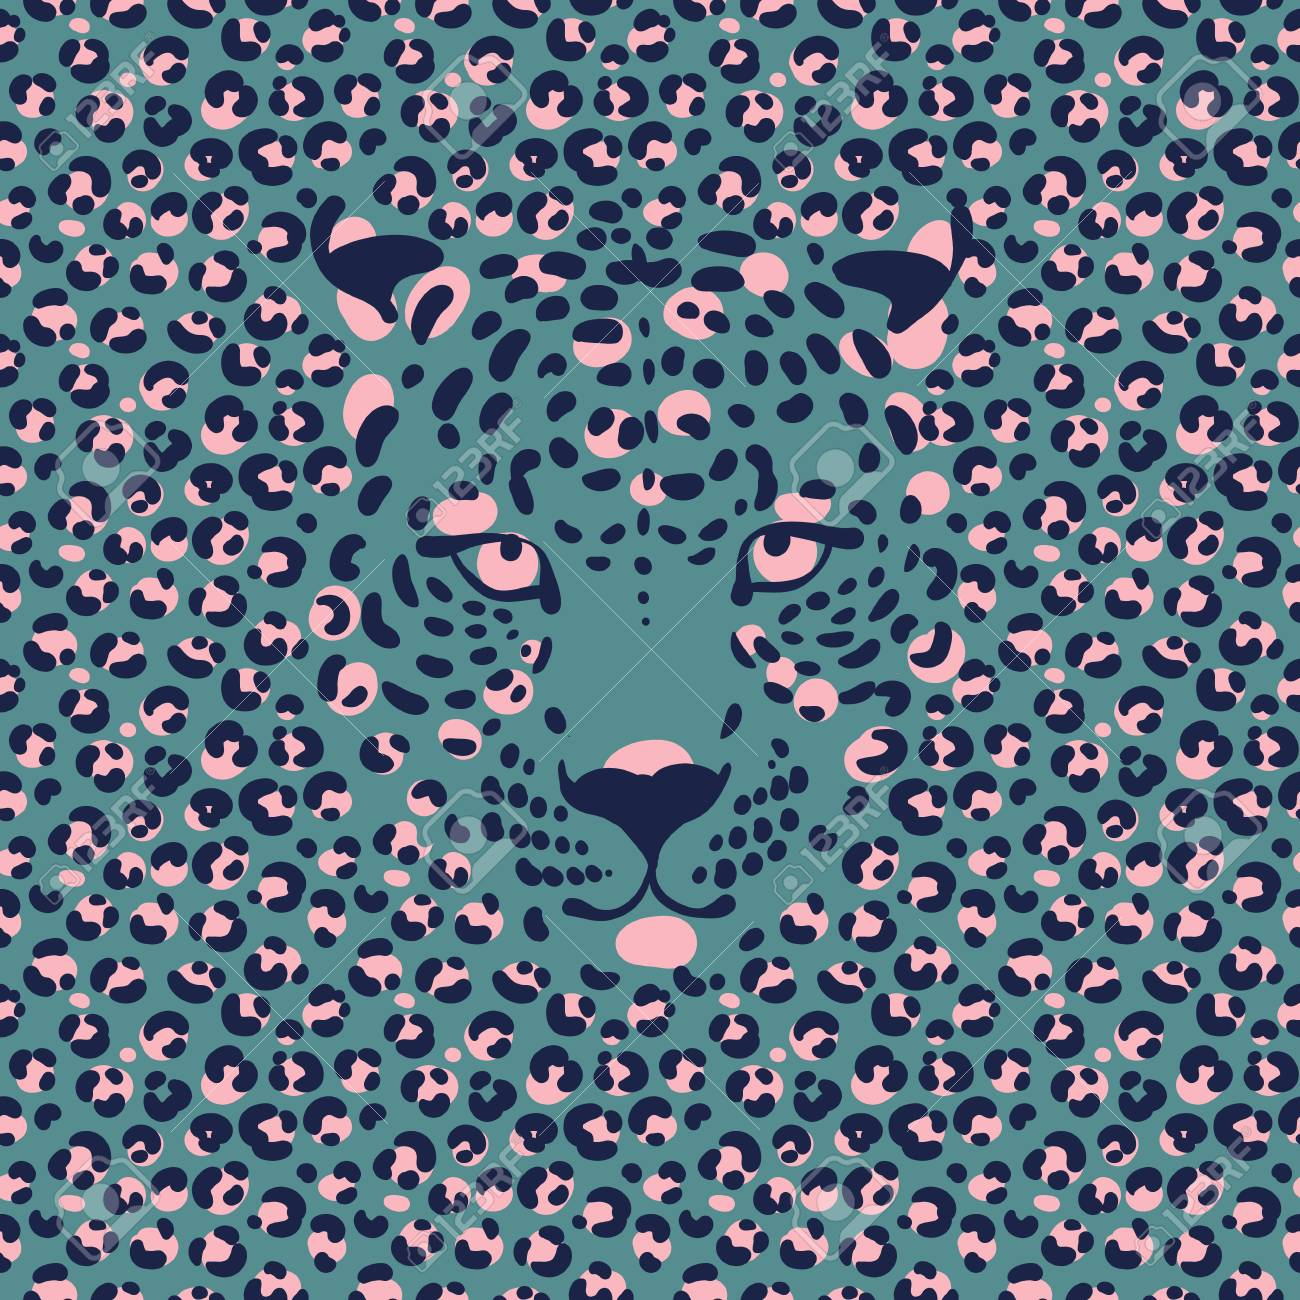 Seamless Wallpaper With A Leopard Print And A Silhouette Of The